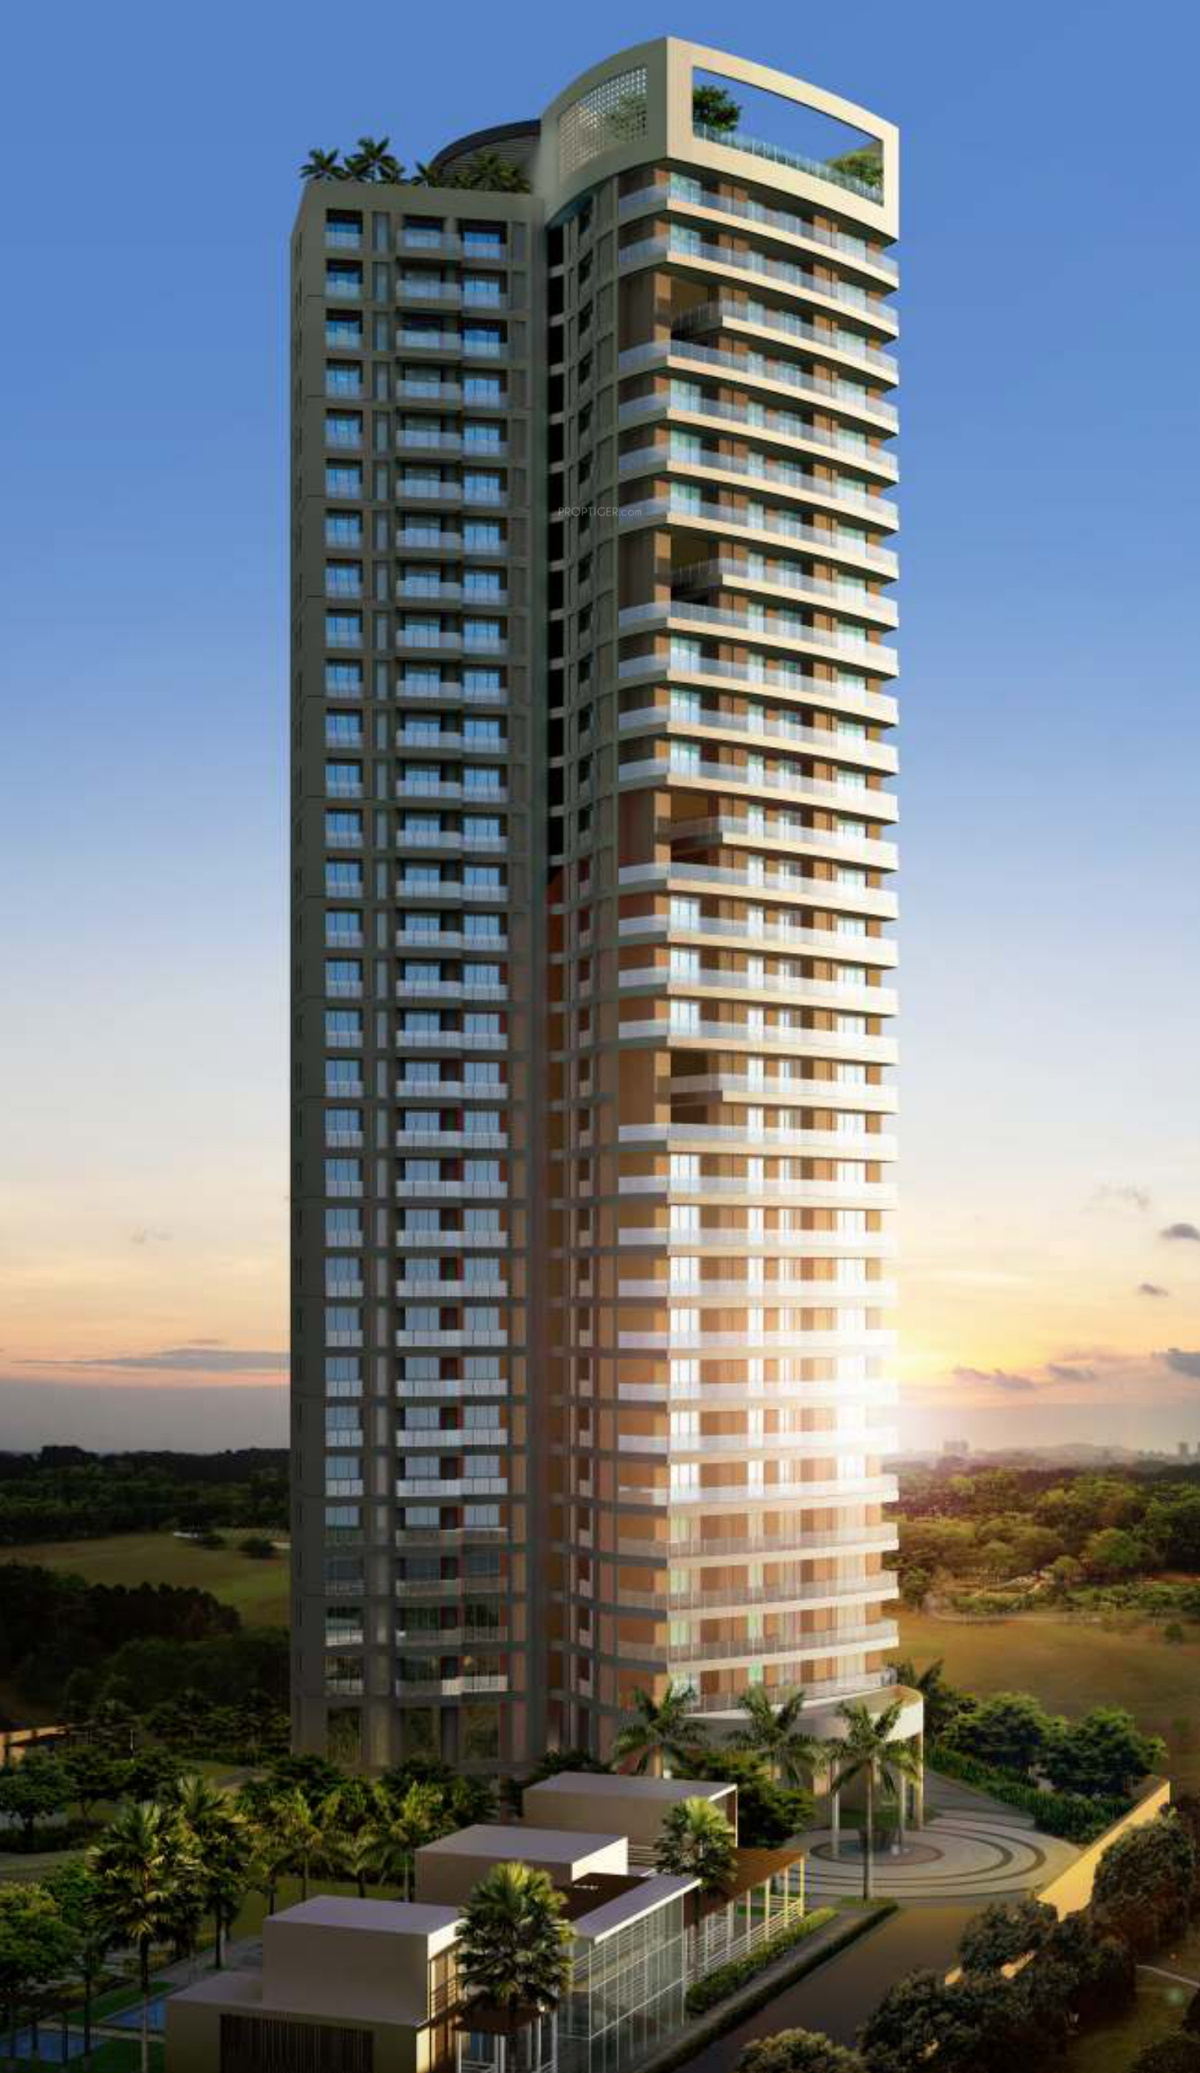 3900 Sq Ft 4 Bhk 5t Apartment For Sale In Kalpataru Group